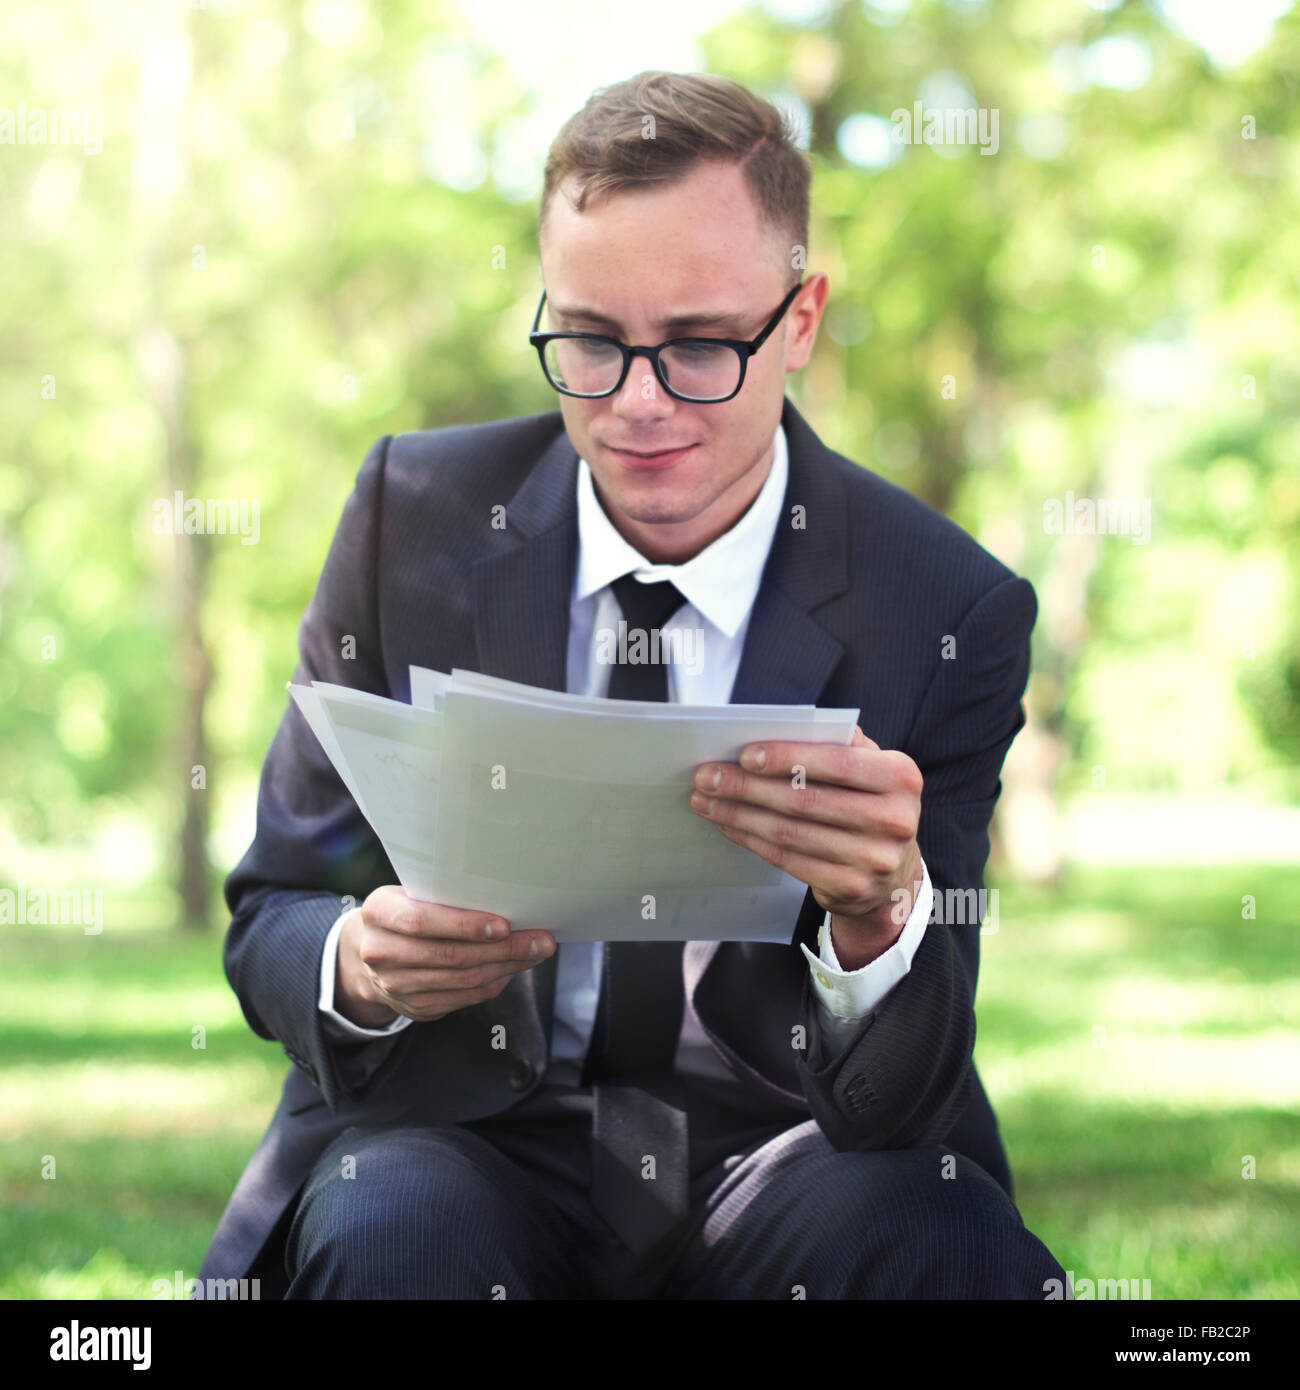 Businessman Stressful Sadness Failure Concept Stock Photo